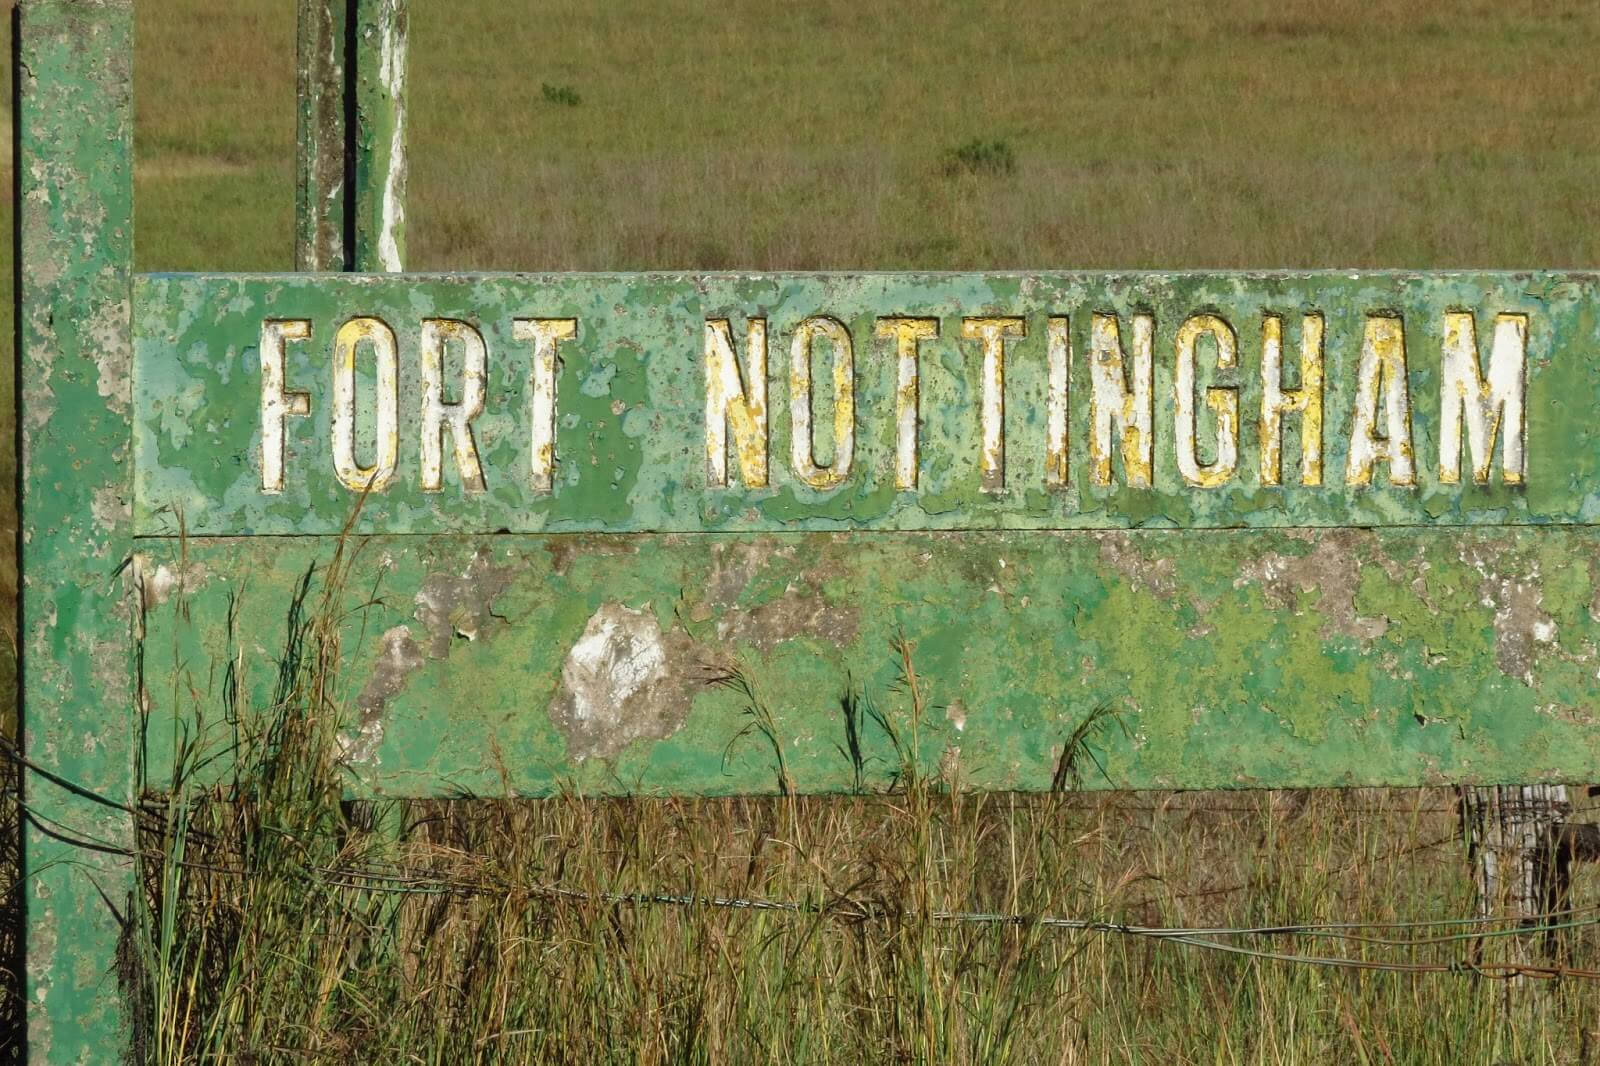 Fort Nottingham